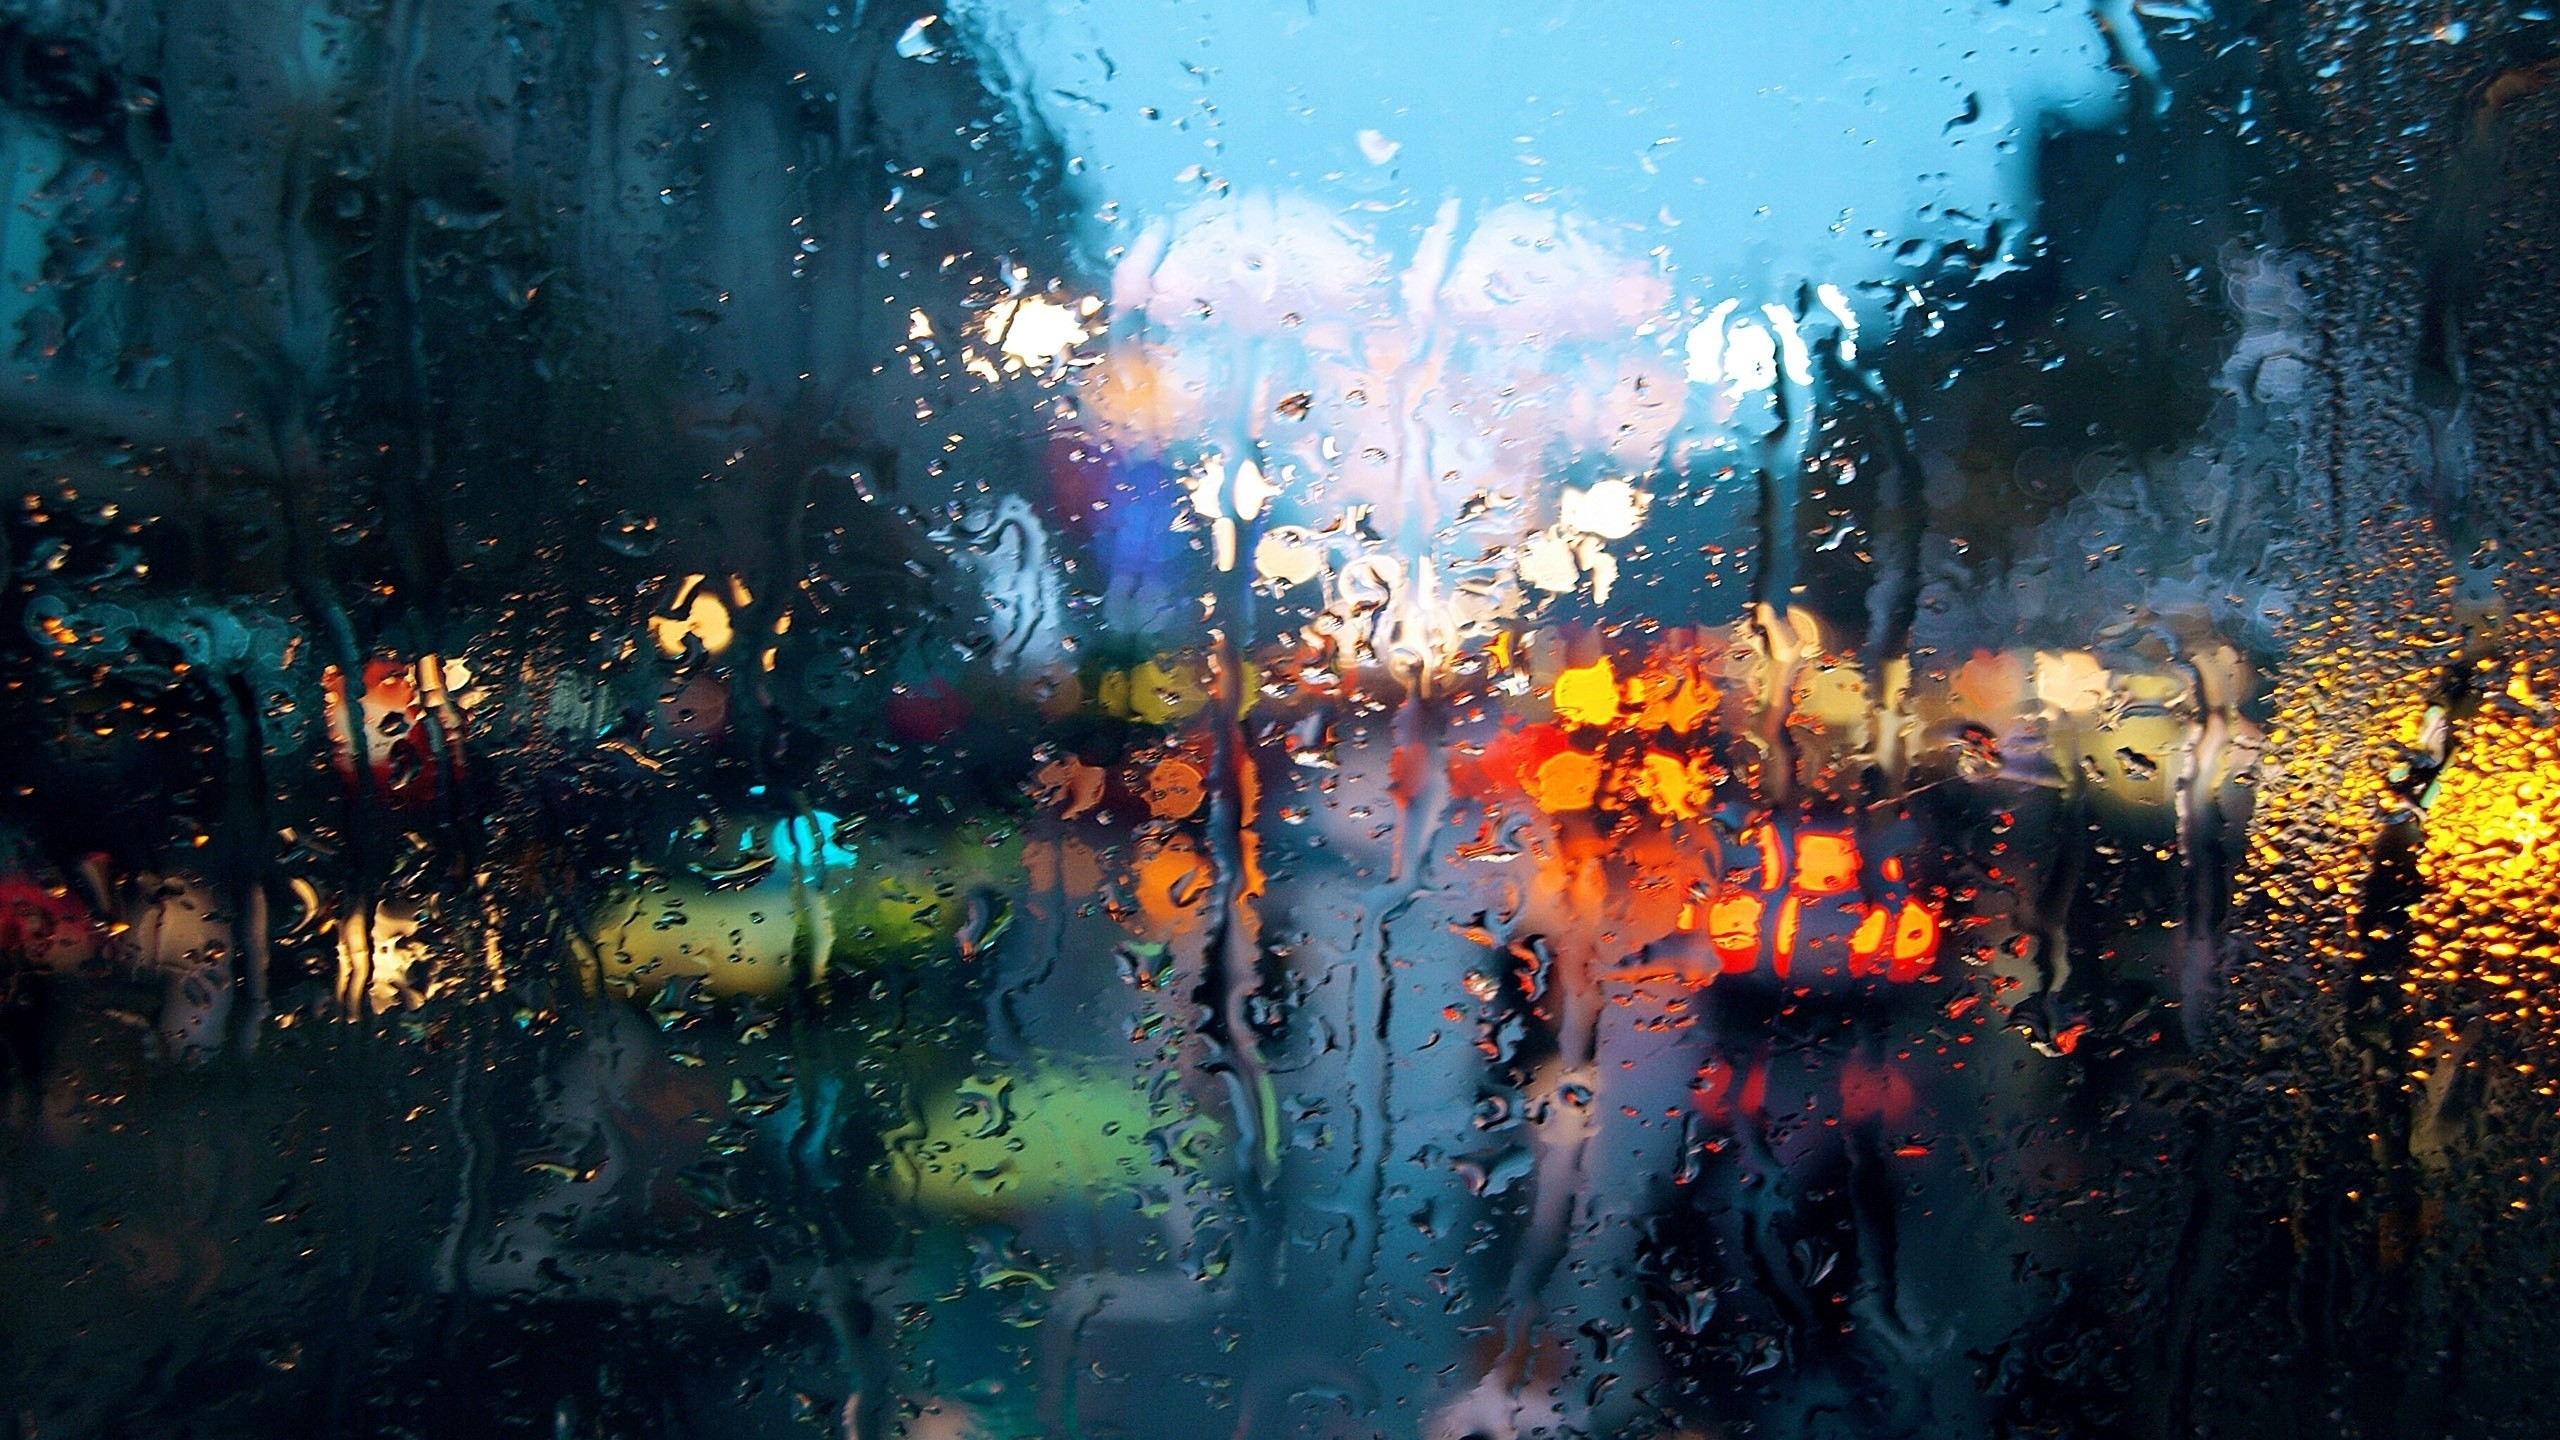 Free Download Rainy Imac Wallpapers Full Hd Download High Definiton 2560x1440 For Your Desktop Mobile Tablet Explore 70 Imac Wallpapers Hd Imac Desktop Wallpaper Best Wallpapers For Mac 5k